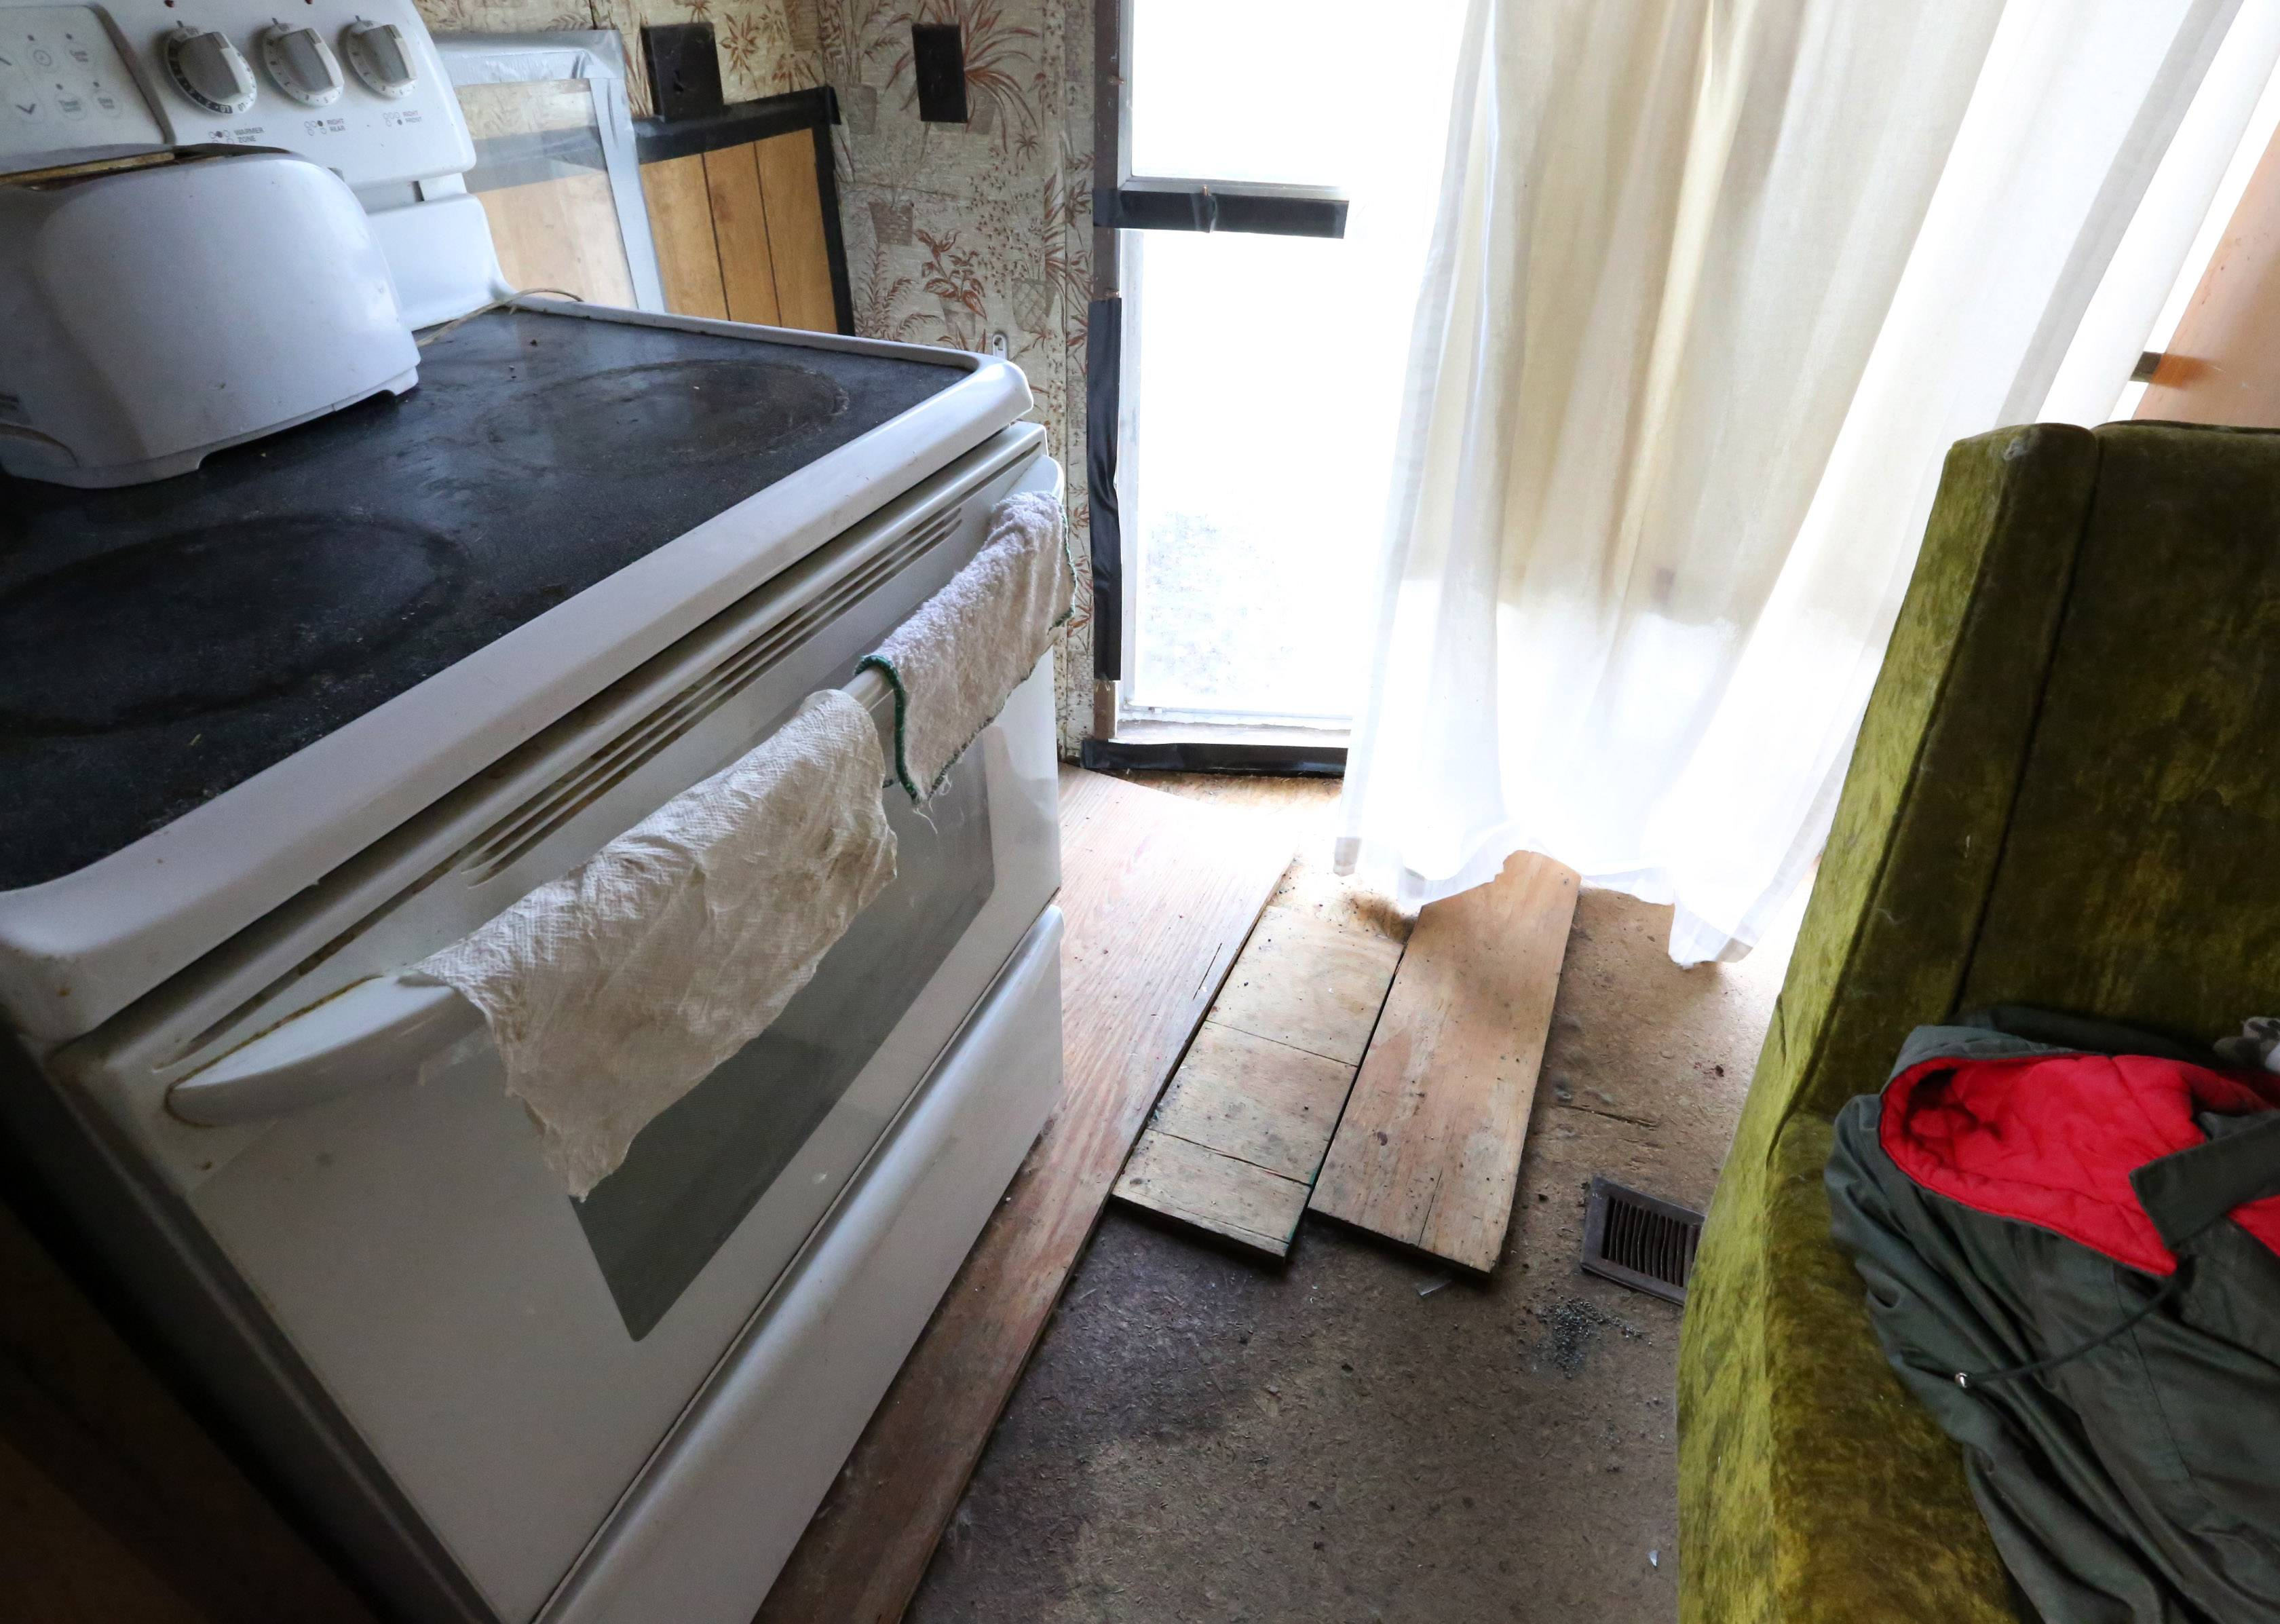 After floodwaters gushed through windows in the kitchen of this mobile home, owner Michael Masalski put boards on the floor to cover the rotted areas.